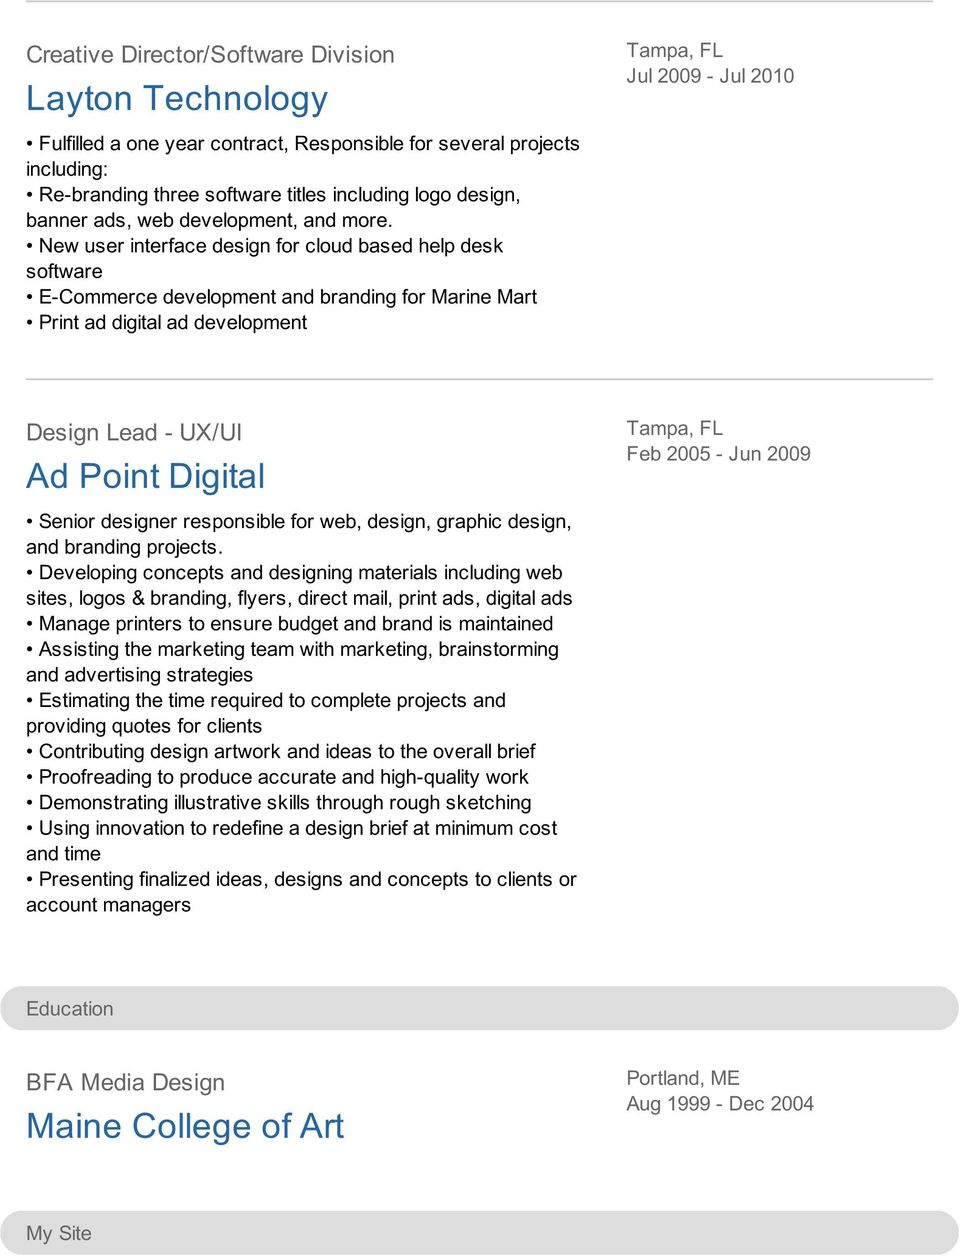 New user interface design for cloud based help desk software E-Commerce development and branding for Marine Mart Print ad digital ad development Design Lead - UX/UI Ad Point Digital Feb 2005 - Jun